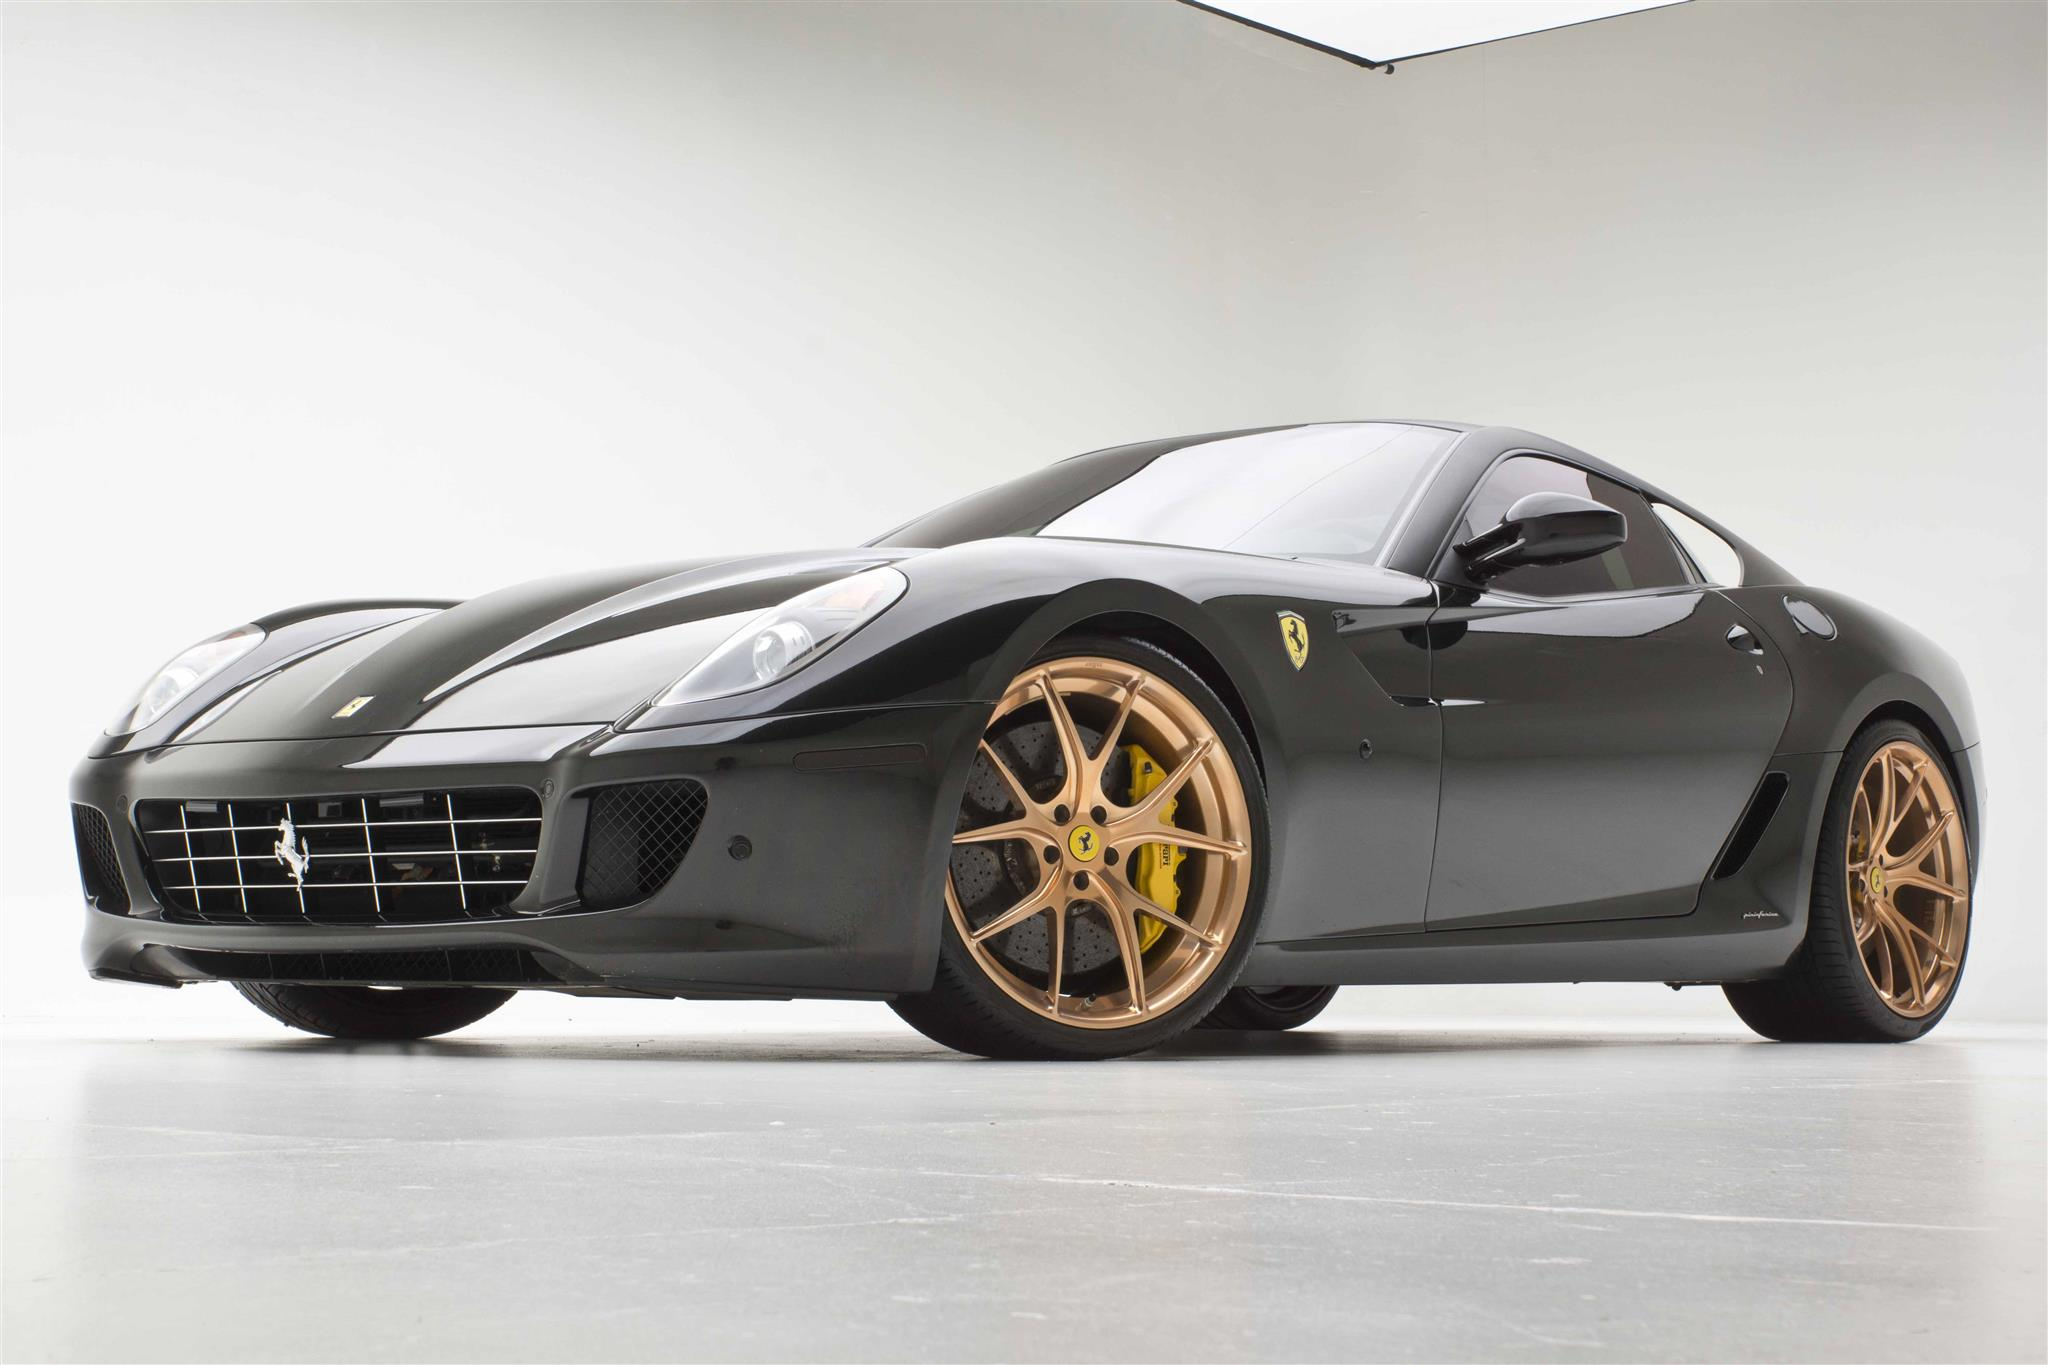 Ferrari 599 Gtb With Uber Rose Gold Wheels Al Ed S Autosound West Hollywood West Hollywood Ca Us 25570